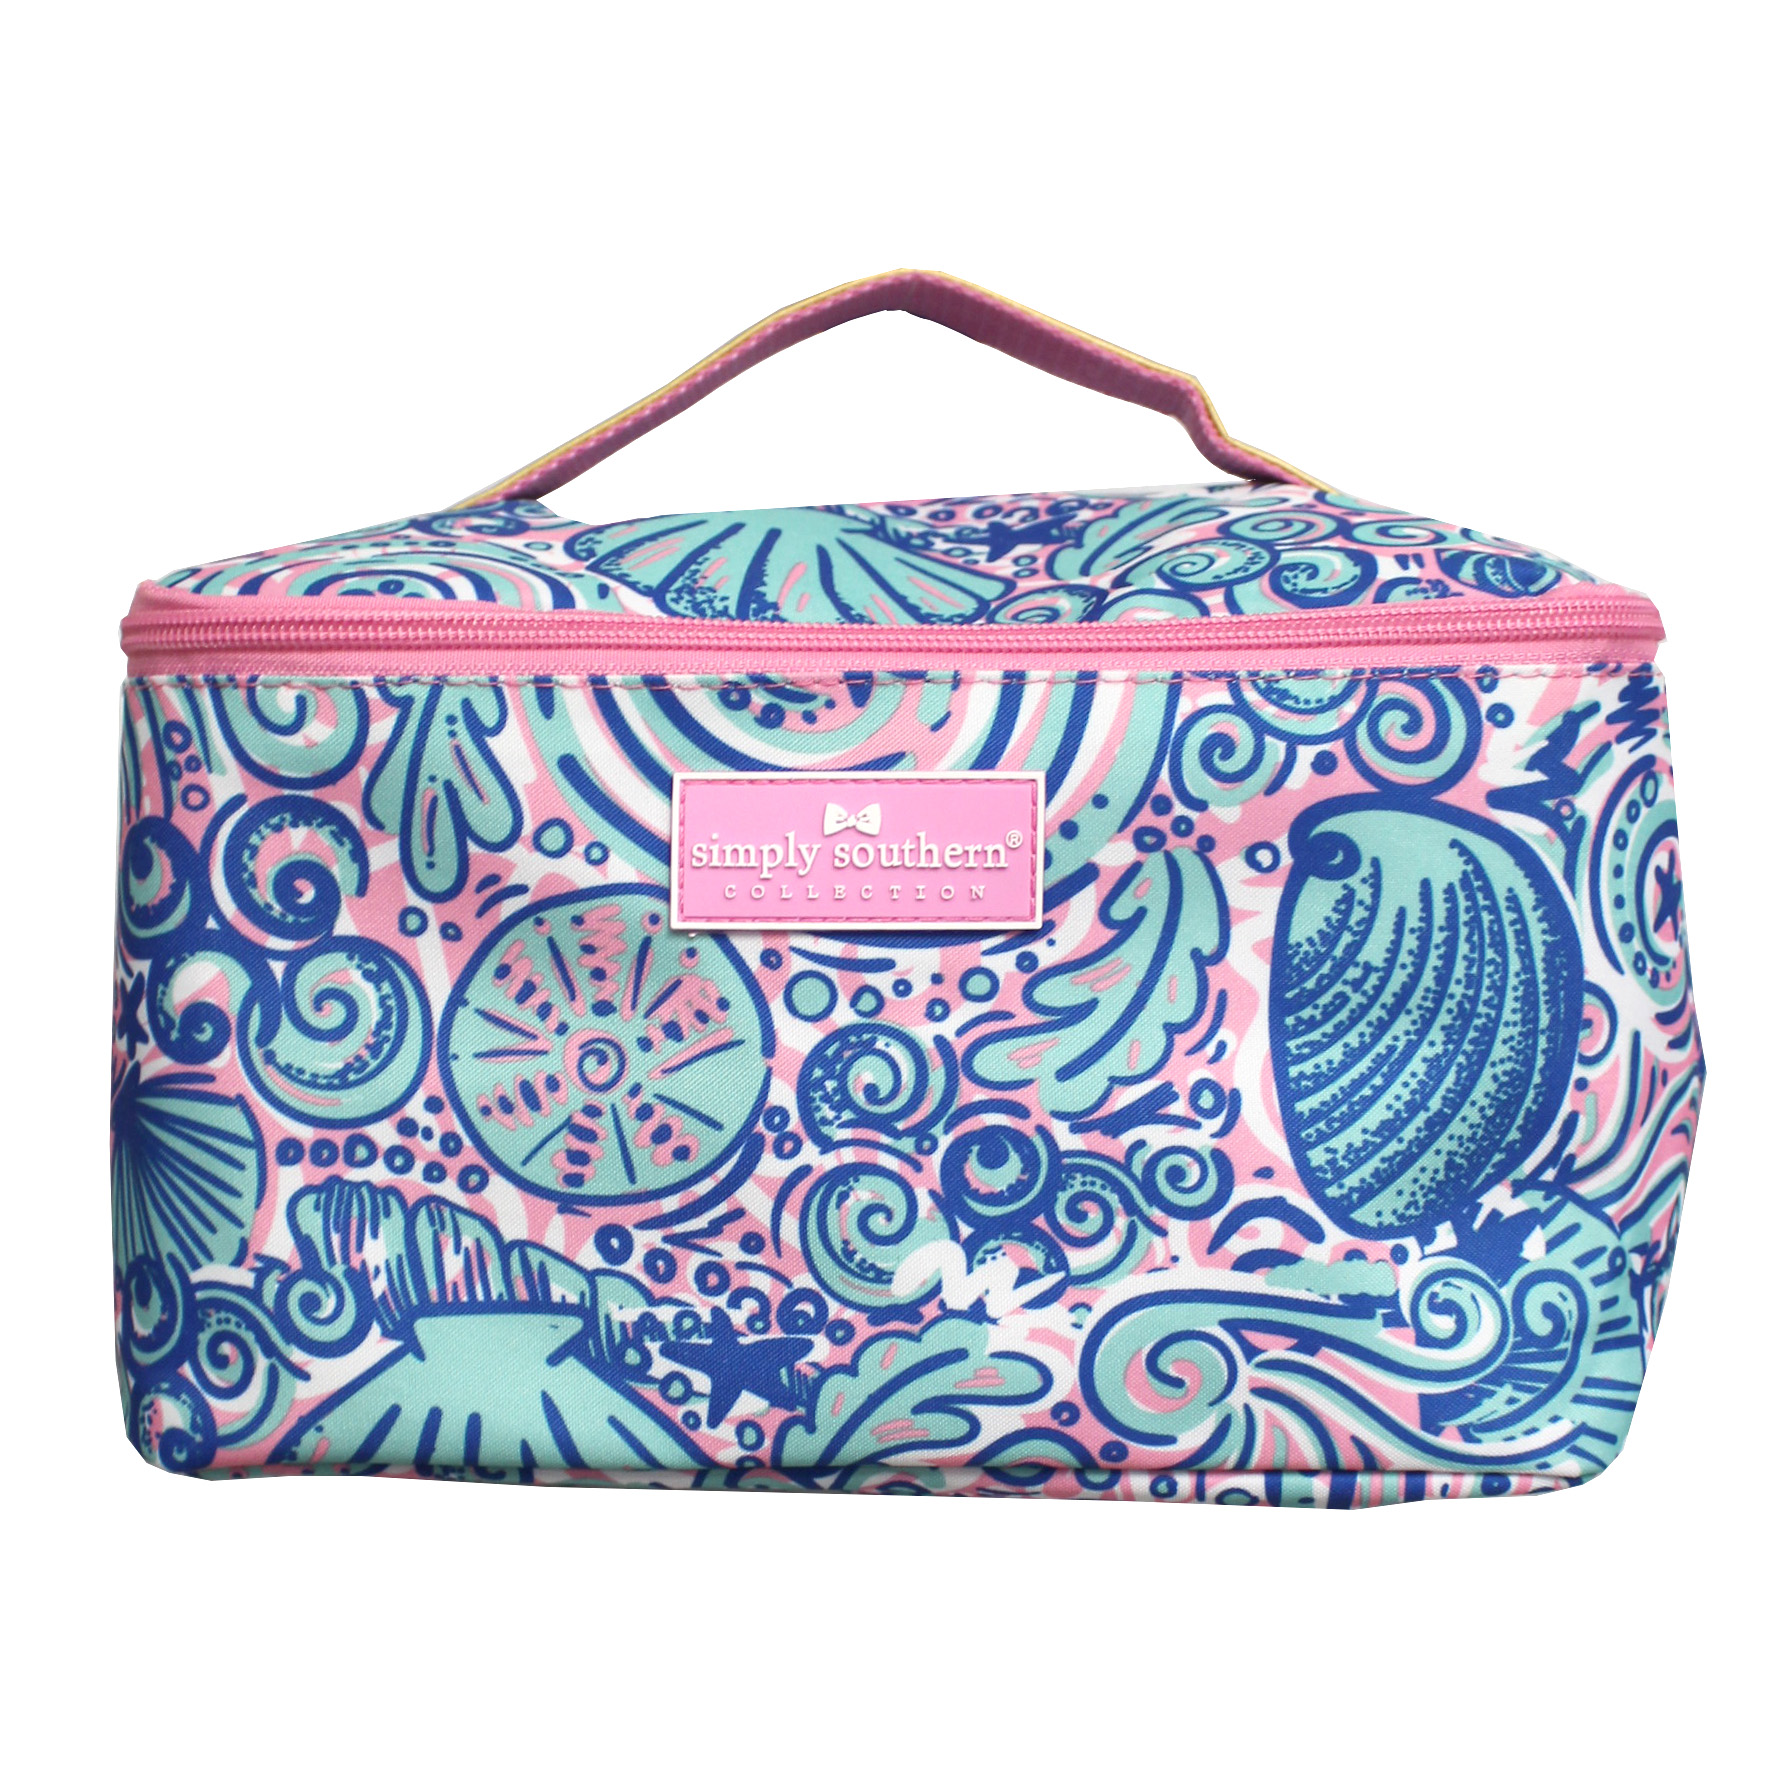 Swirly Shell Glam Bag Best Of Everything Online Shopping